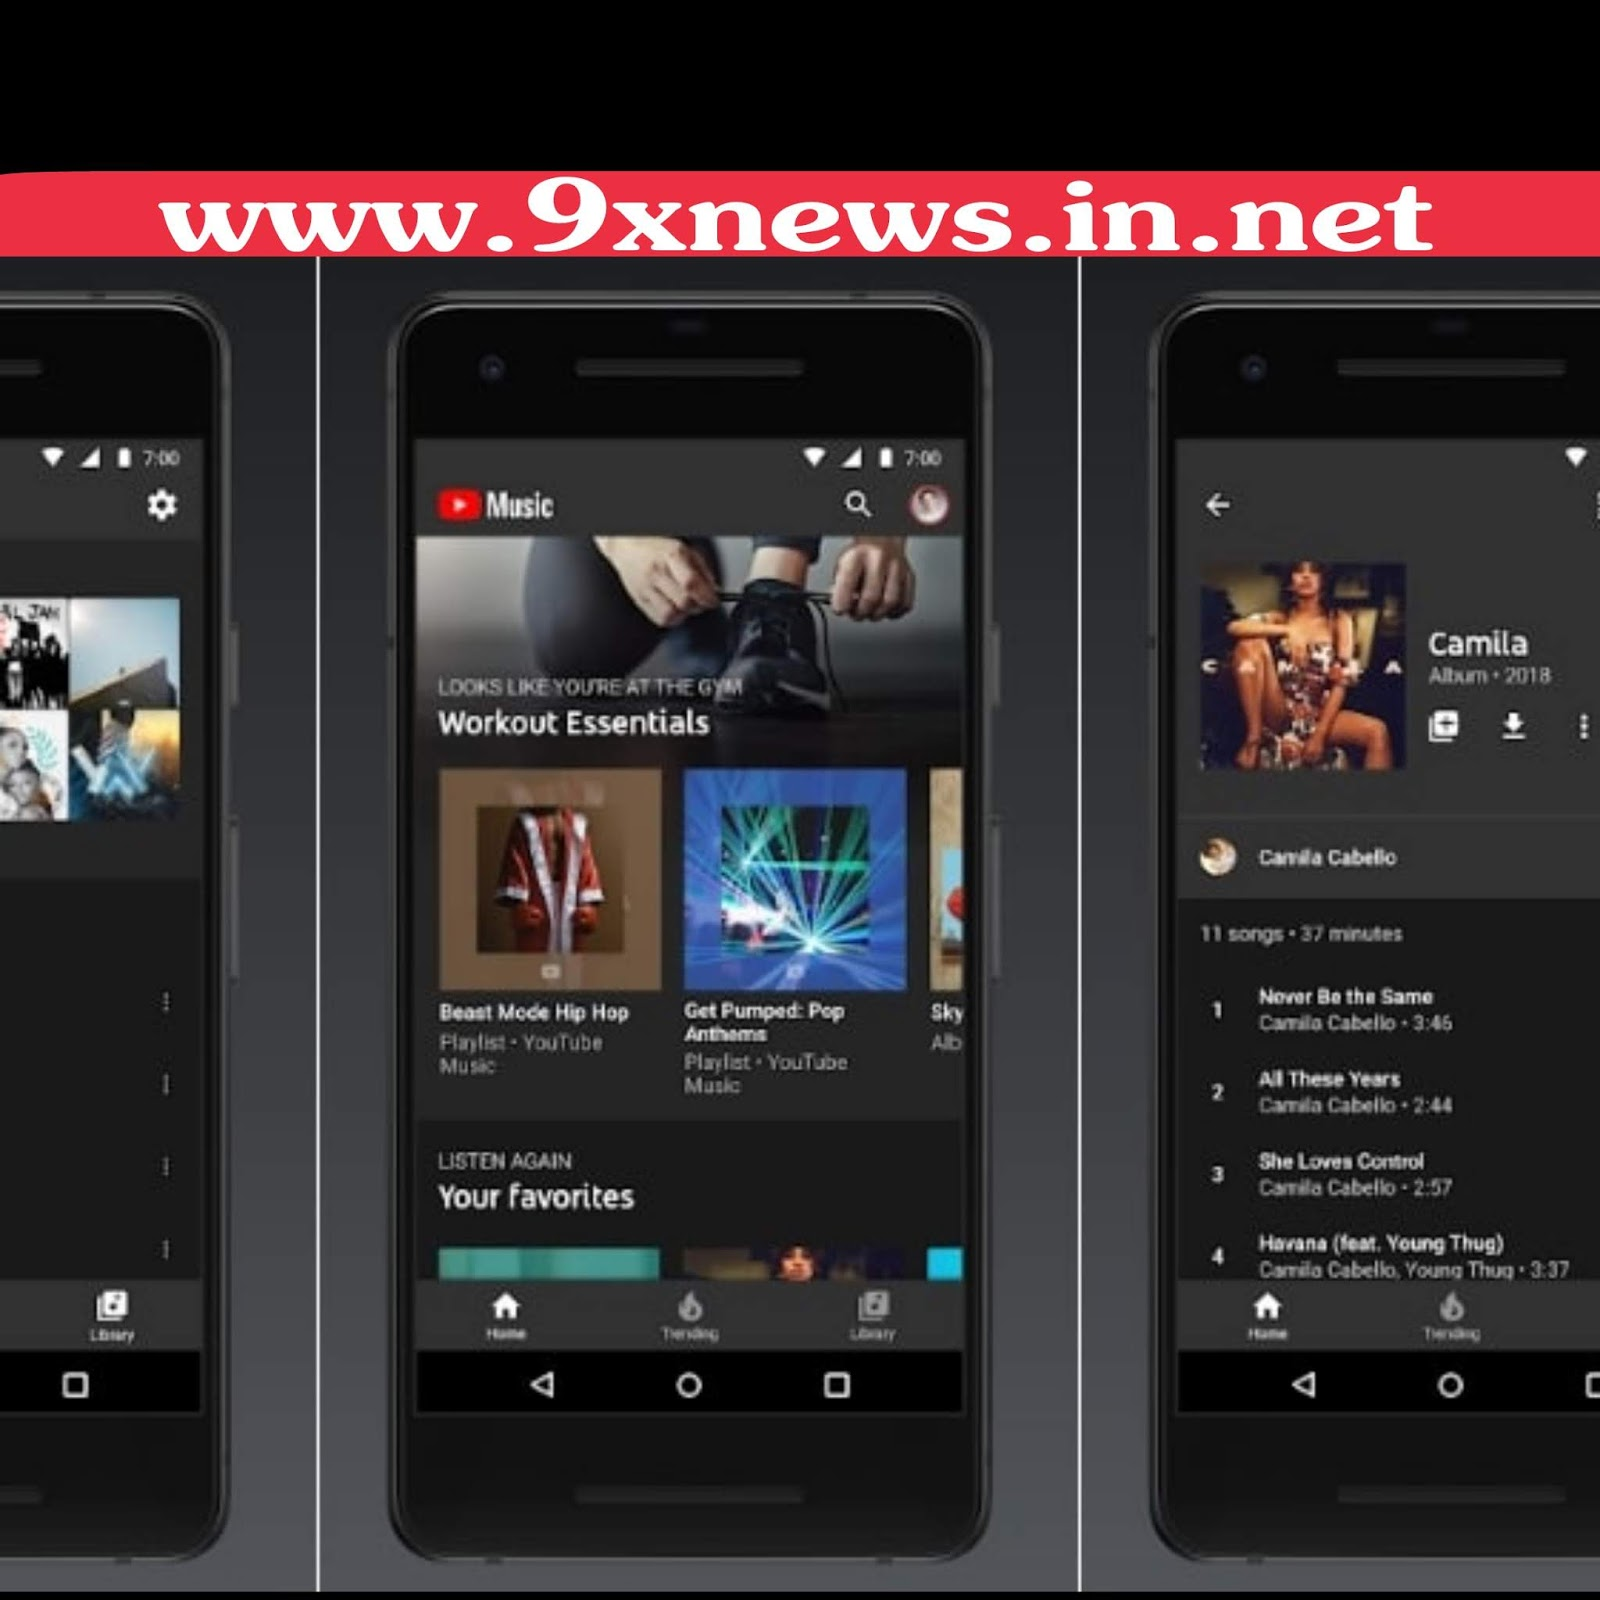 YouTube Music and YouTube Premium Service Launch in India